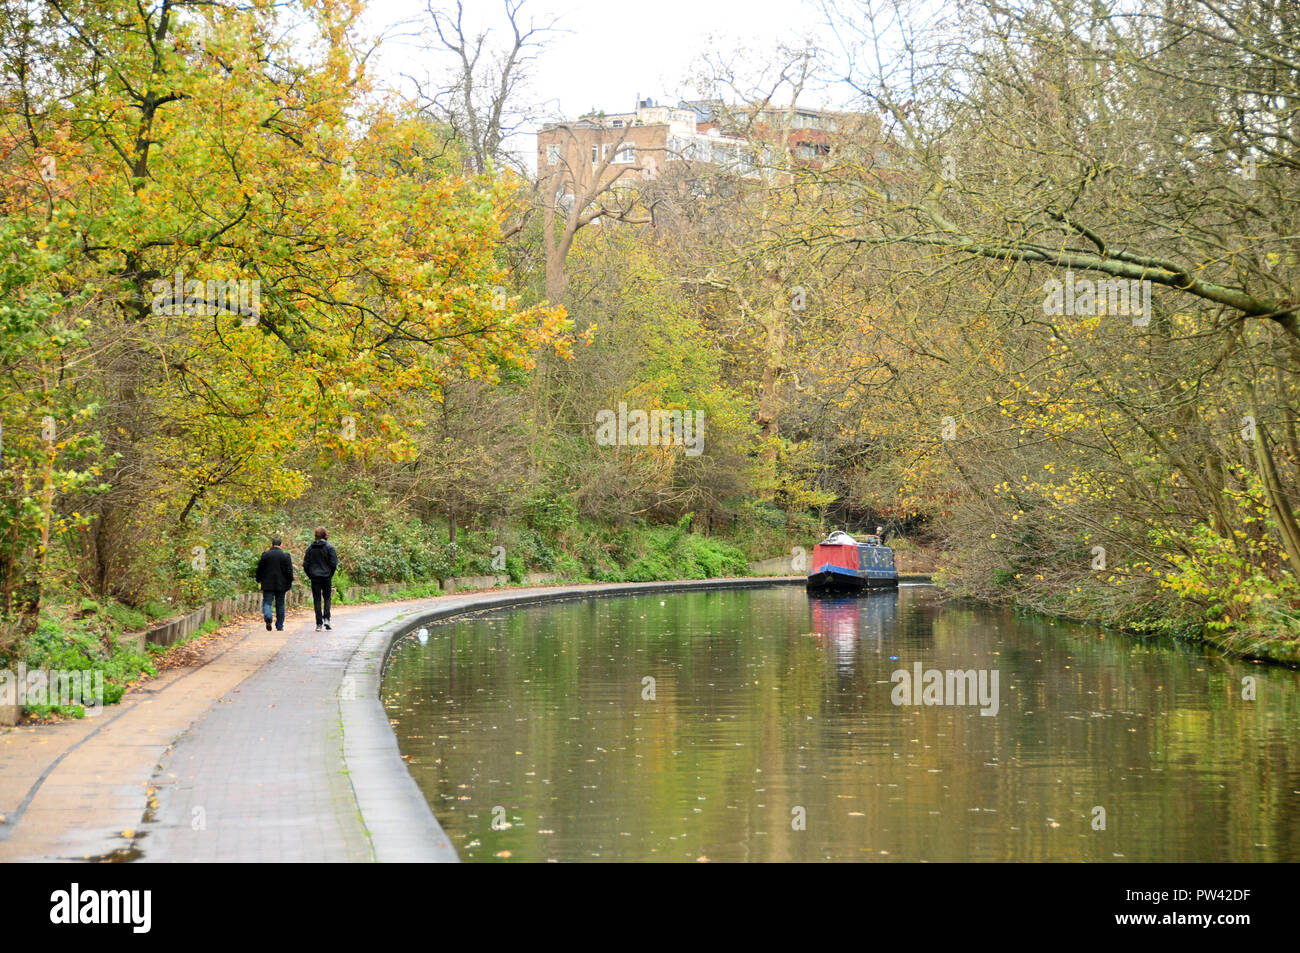 Regents Canal, London - Stock Image